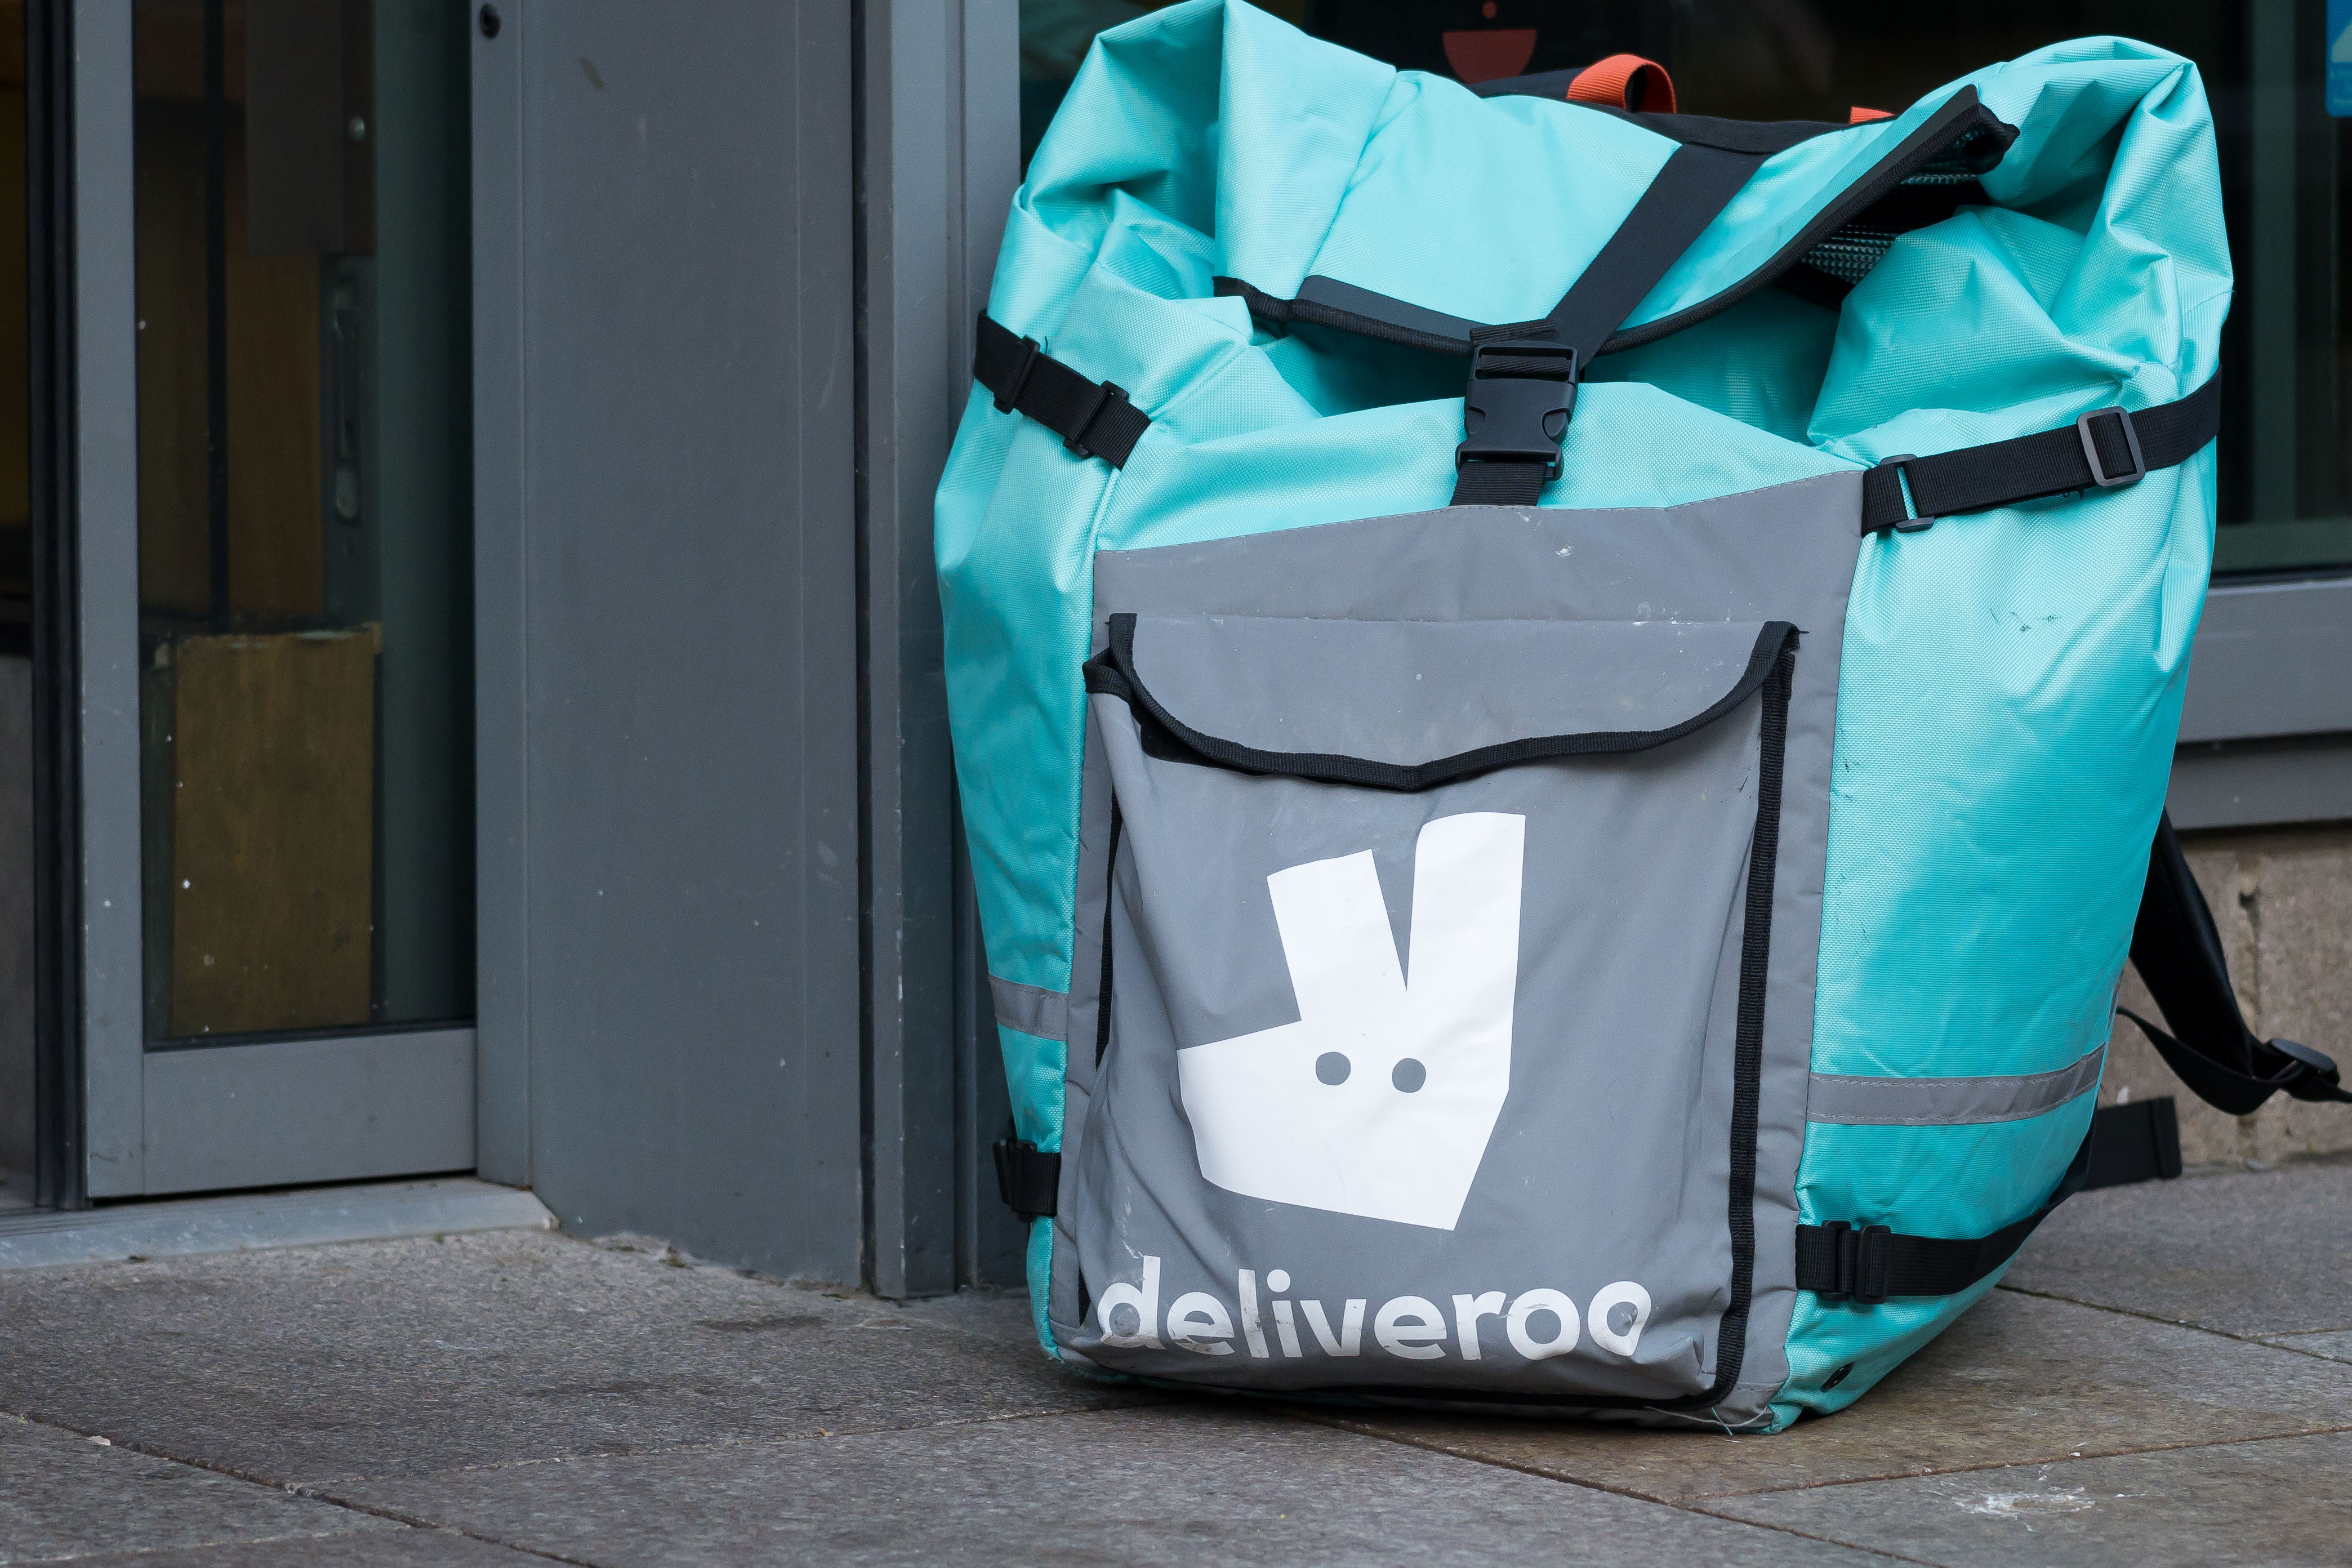 Food Delivery Juggernaut Will 'Help' Restaurants by Monopolising Supply Chains